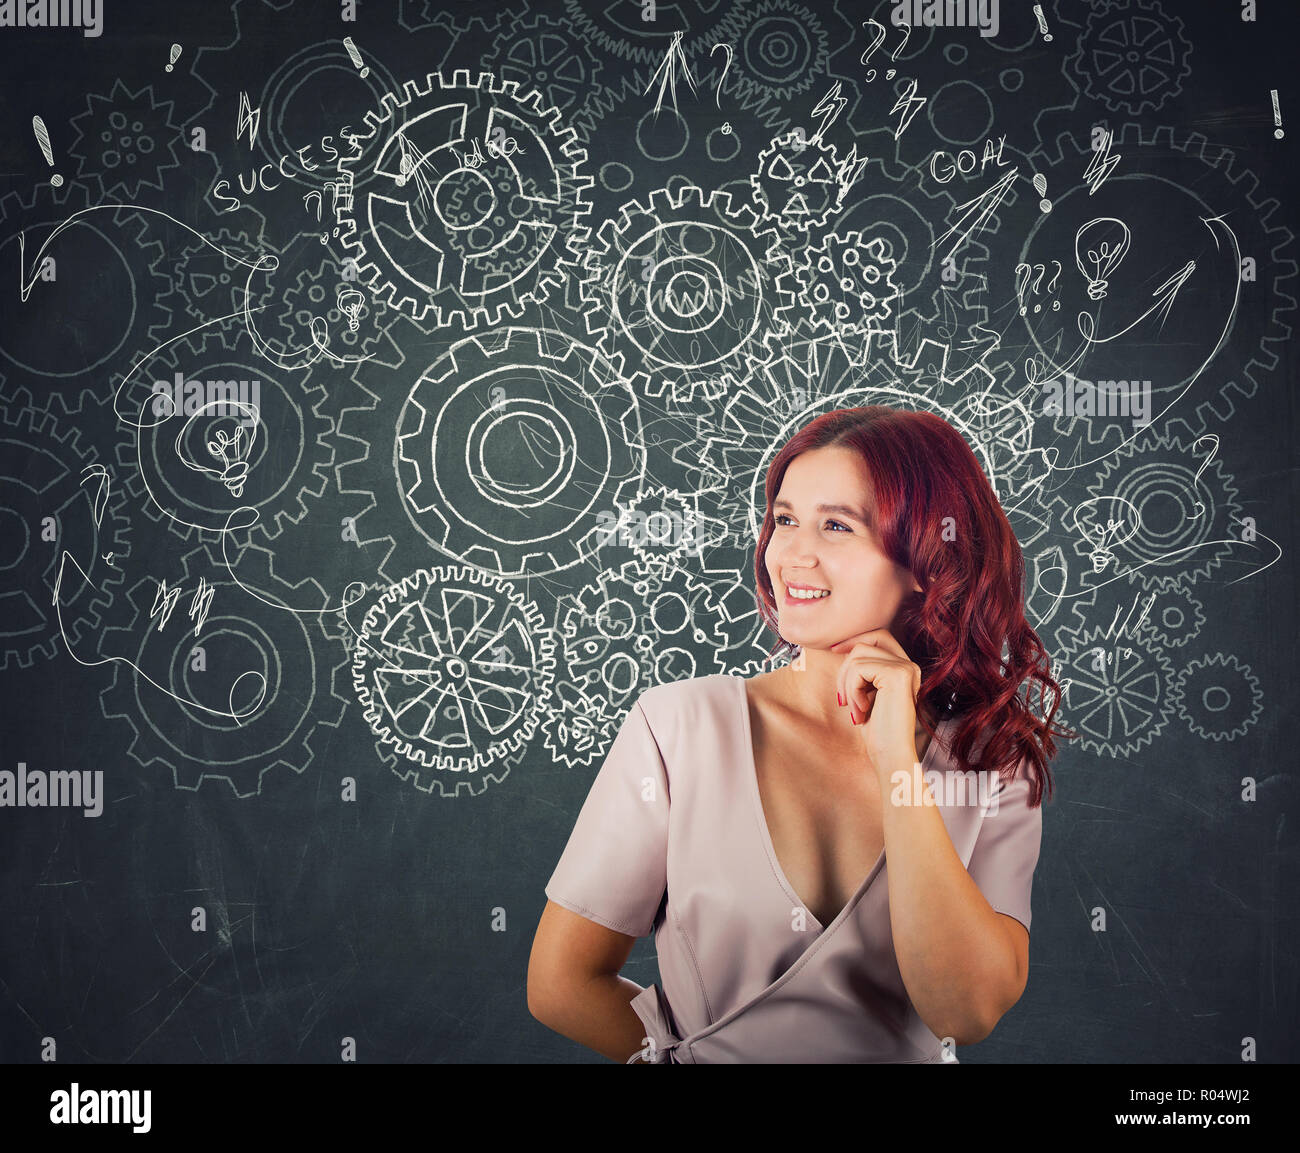 Hard thinking serious smart woman over blackboard background gear brain arrows and mess as thoughts. Concept for mental, psychological development. Fi - Stock Image